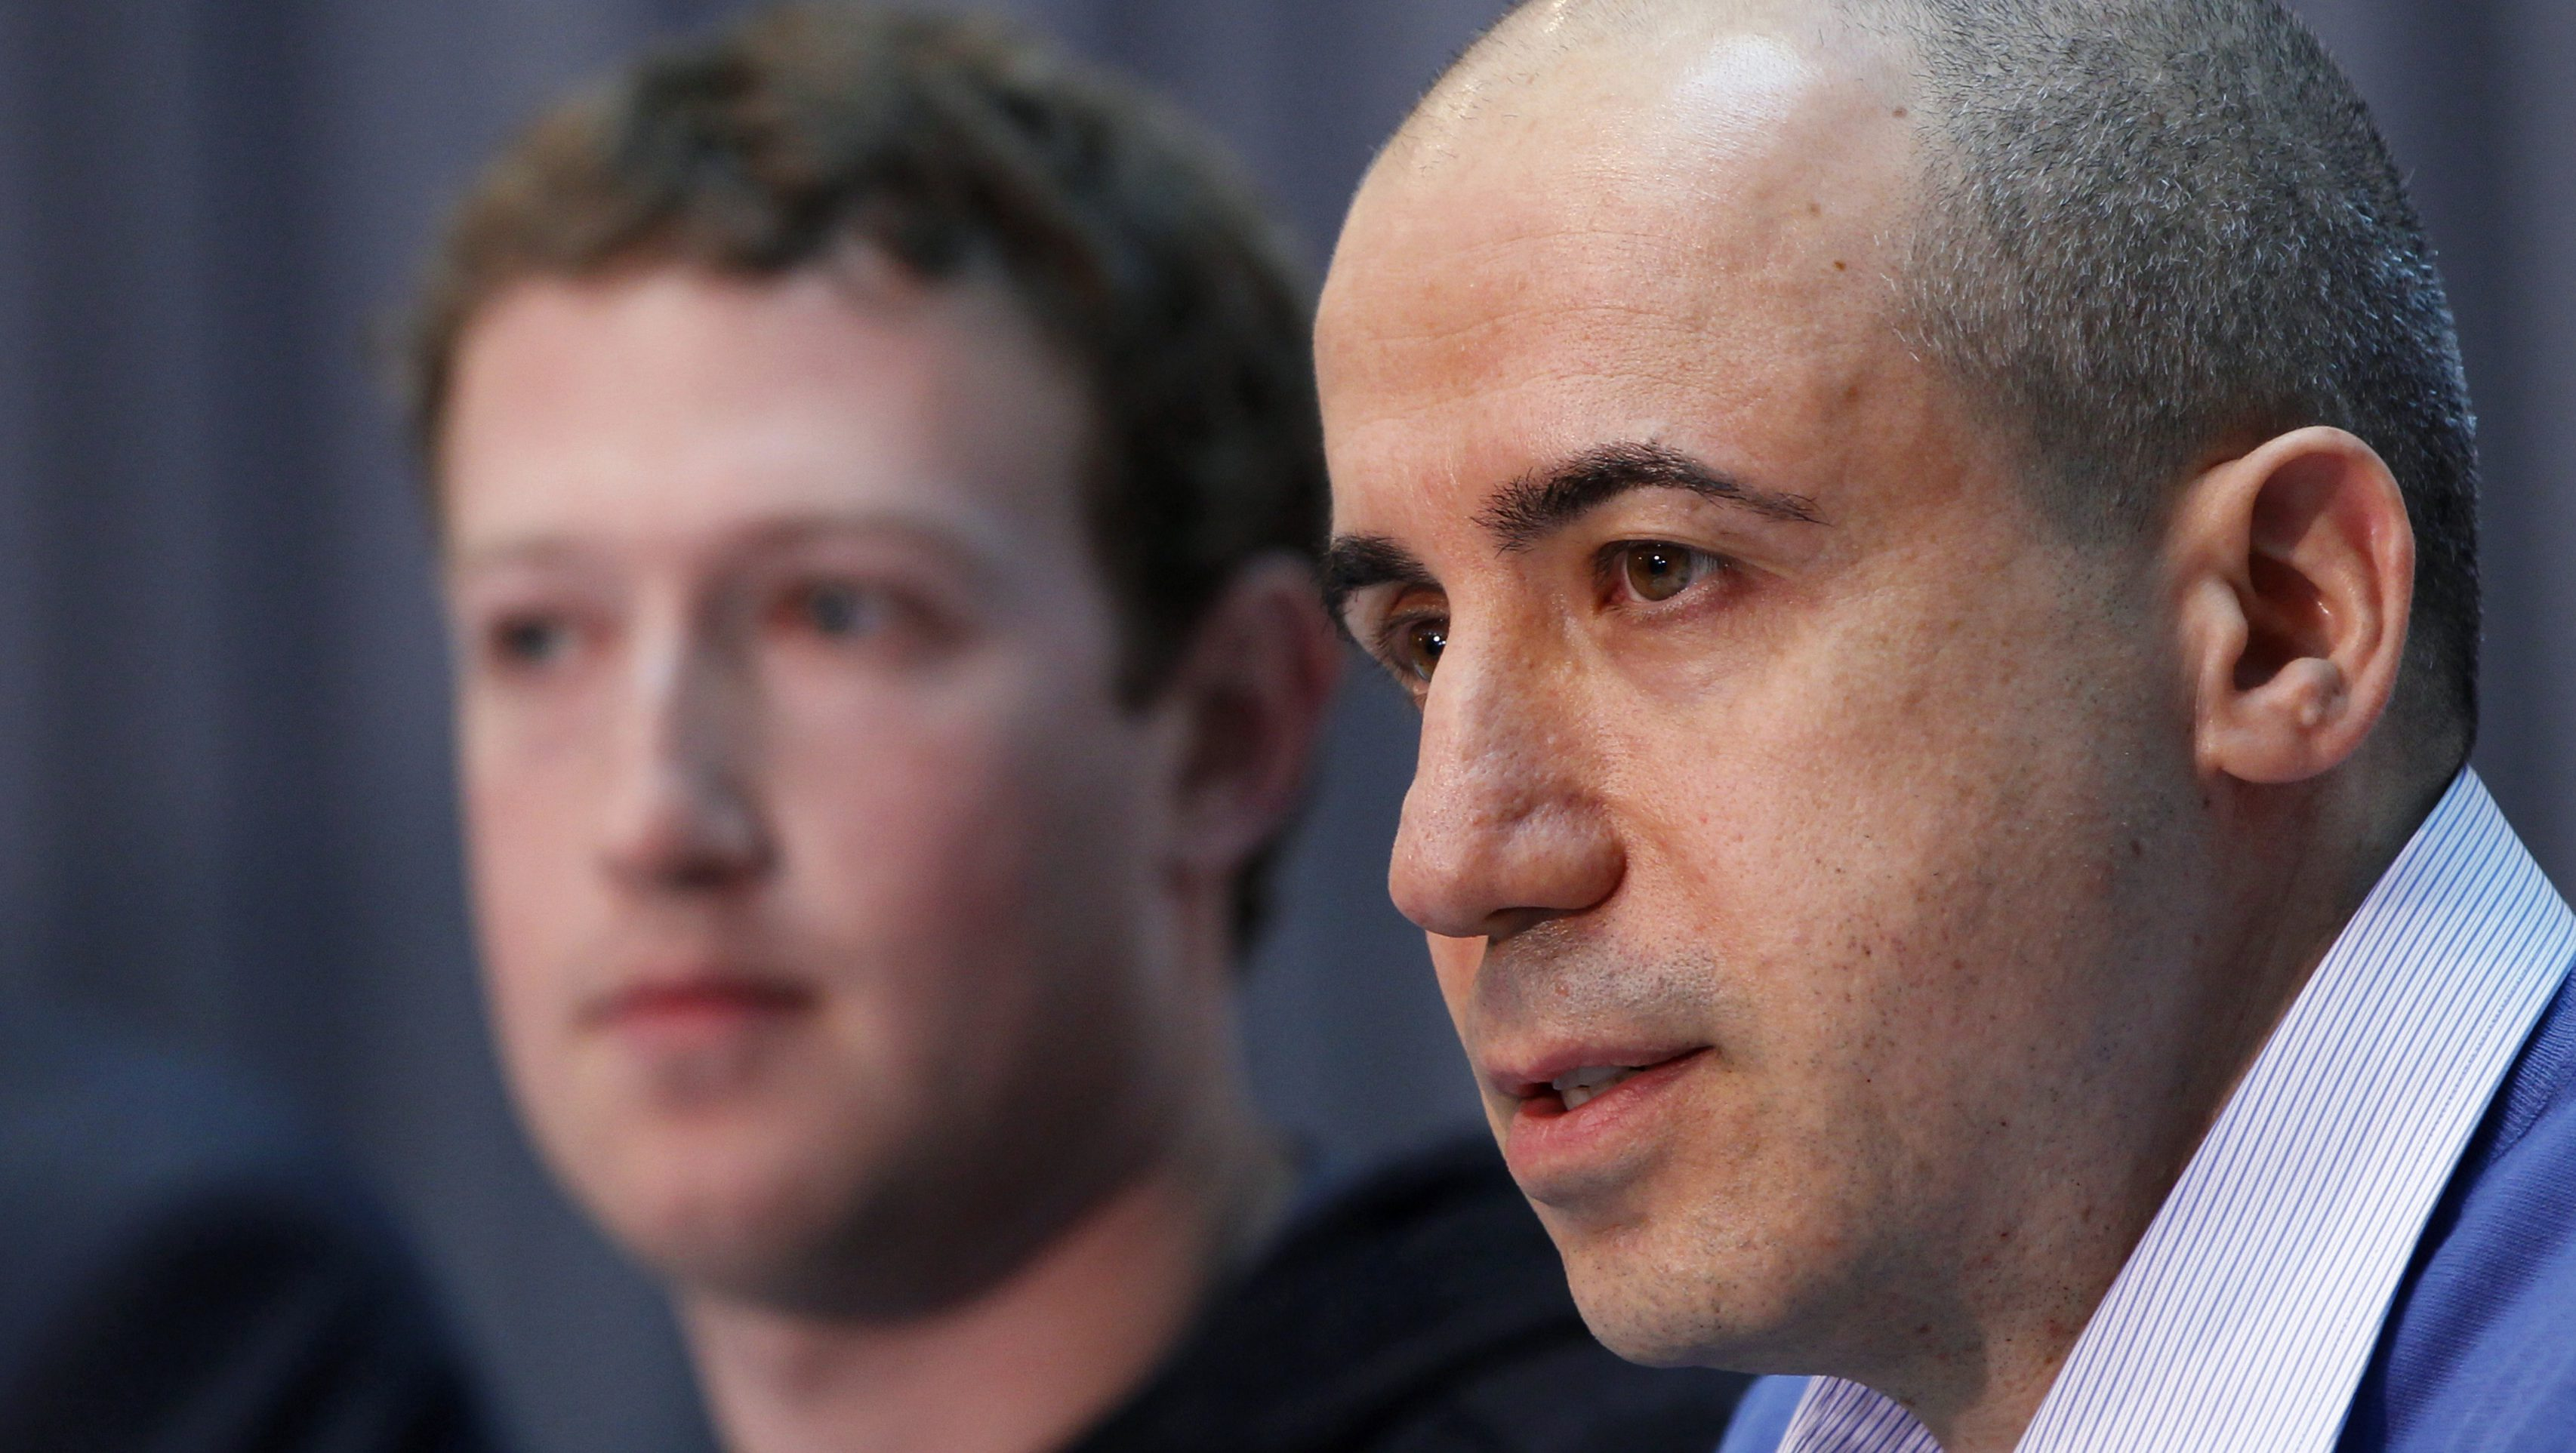 Russian entrepreneur and venture capitalist Yuri Milner (R) speaks while Facebook CEO Mark Zuckerberg looks on at the Life Sciences Breakthrough Prize announcement in San Francisco, California February 20, 2013. Eleven winners of the inaugural award each received $3 million and were recognized for excellence in research aimed at curing intractable diseases and extending human life. REUTERS/Robert Galbraith  (UNITED STATES - Tags: SCIENCE TECHNOLOGY BUSINESS) - GM1E92L0DZP01